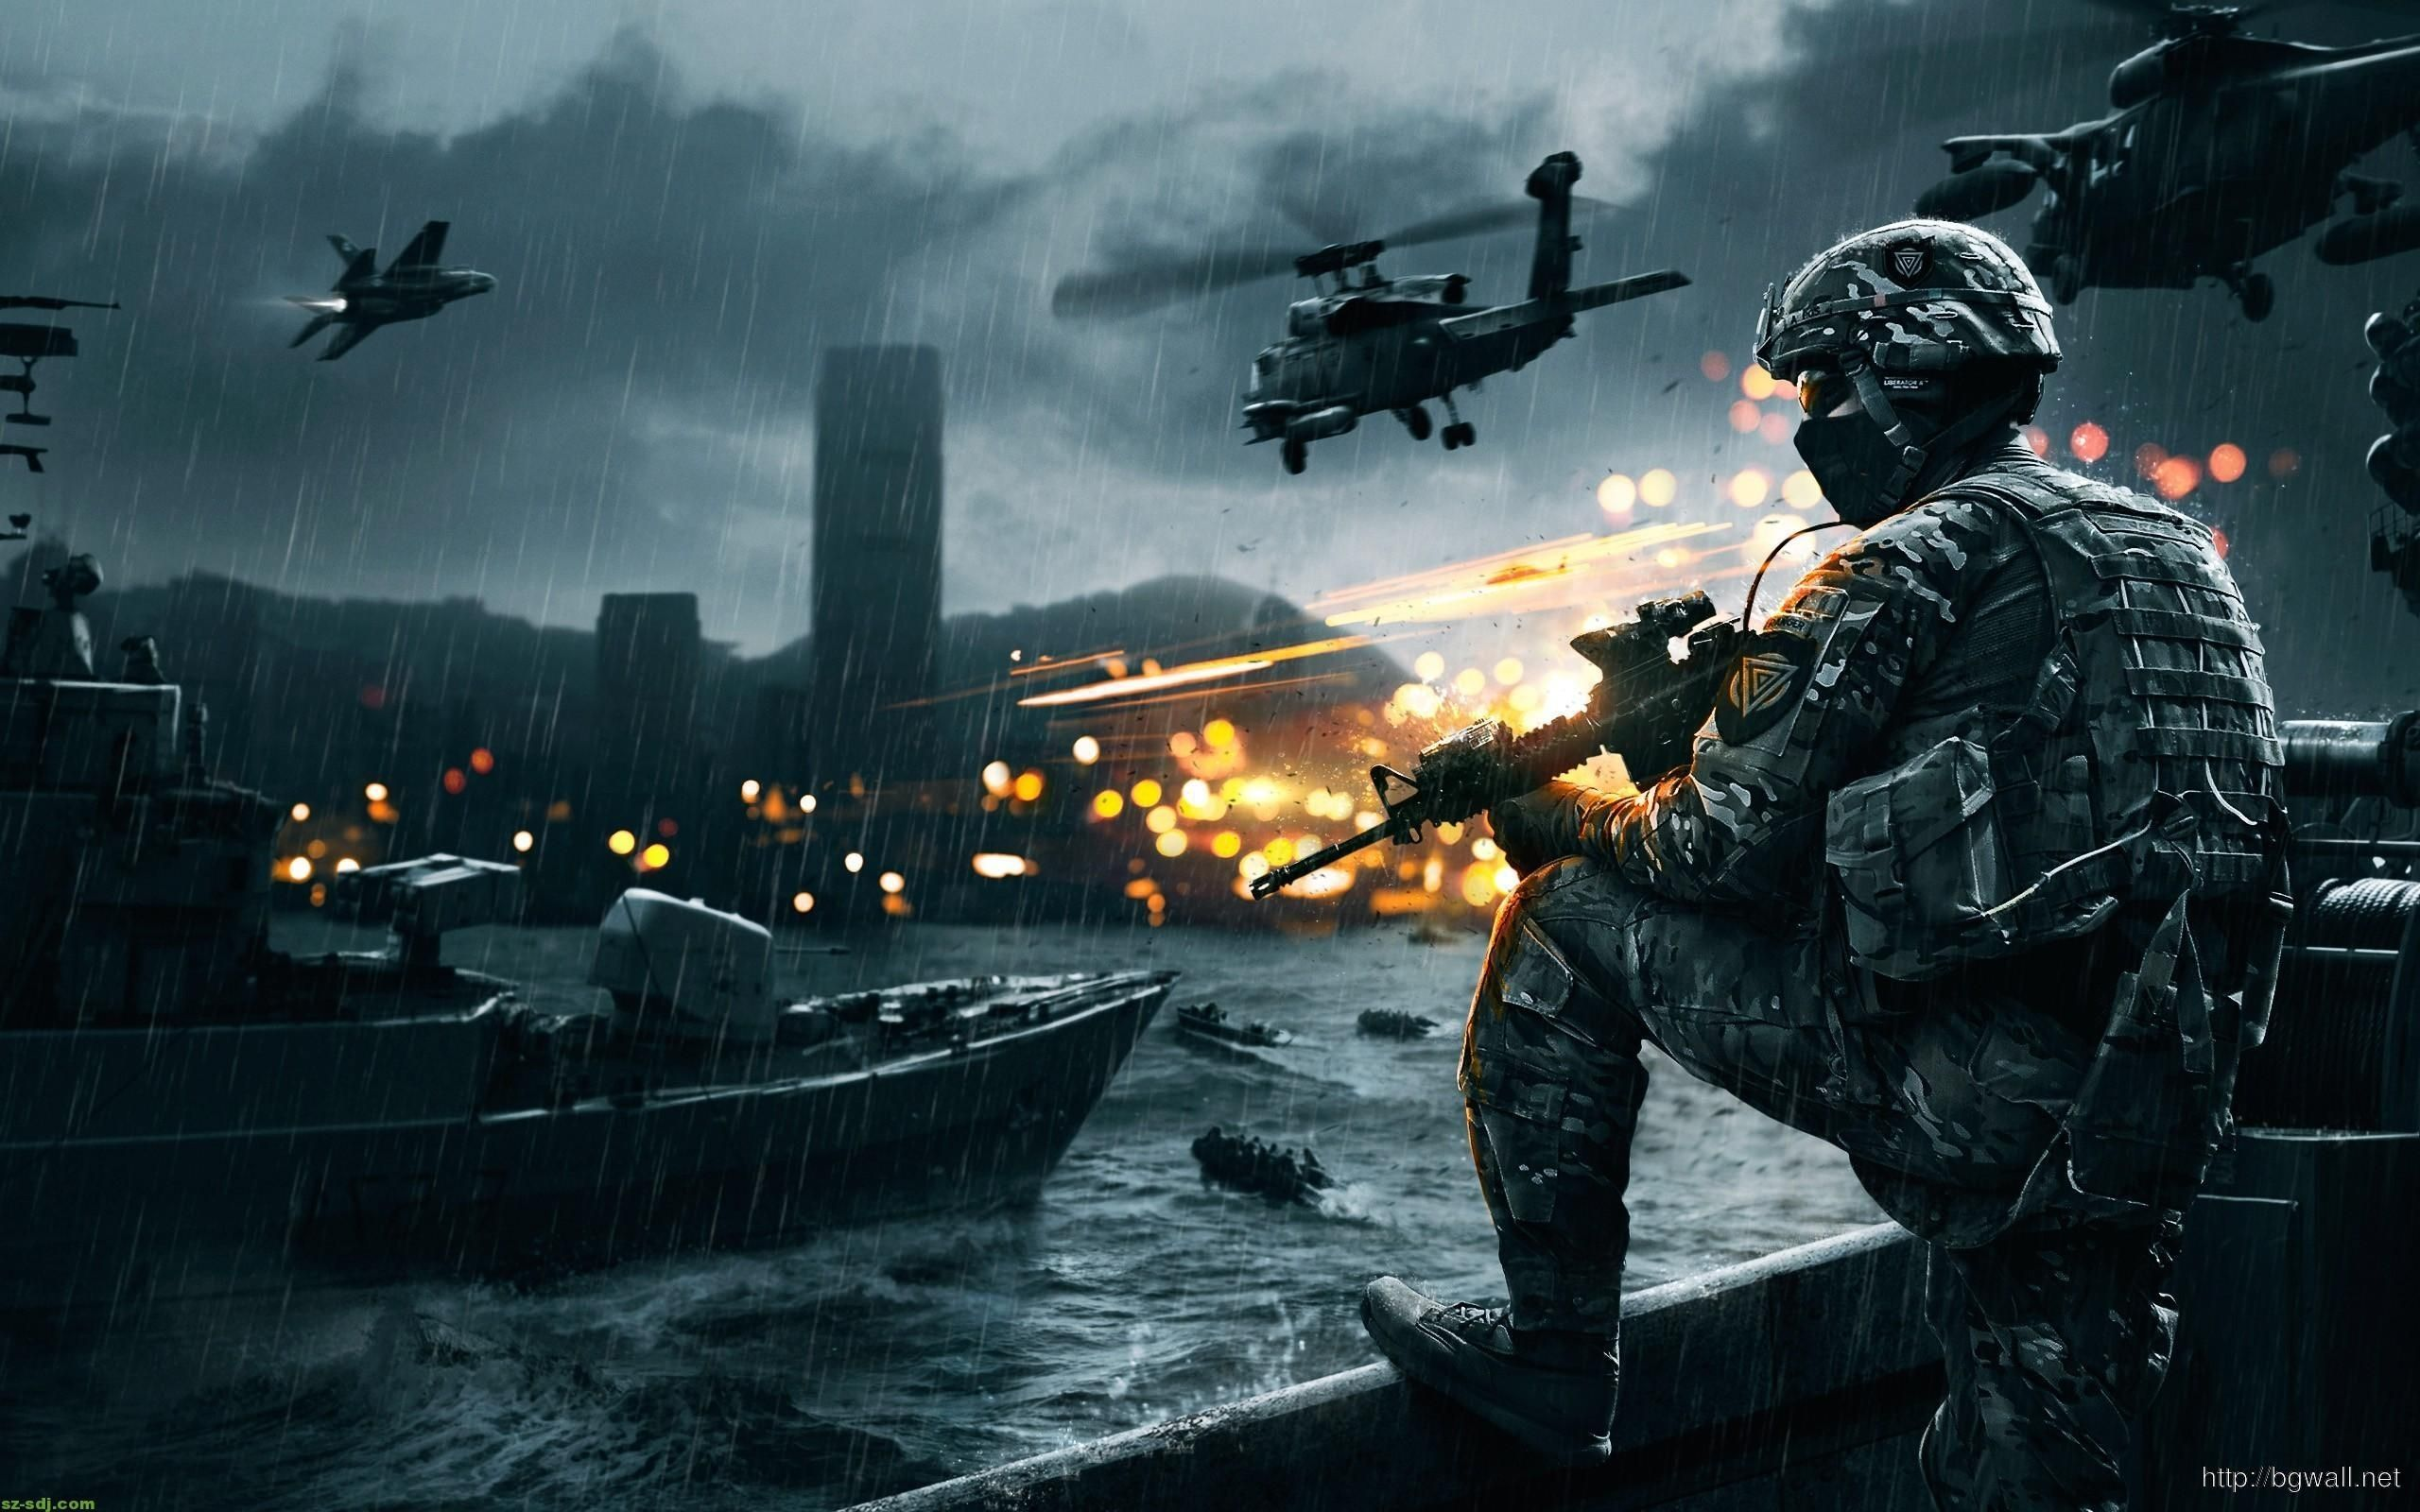 10 Latest War Wallpaper Hd 1080p Full Hd 19201080 For Pc